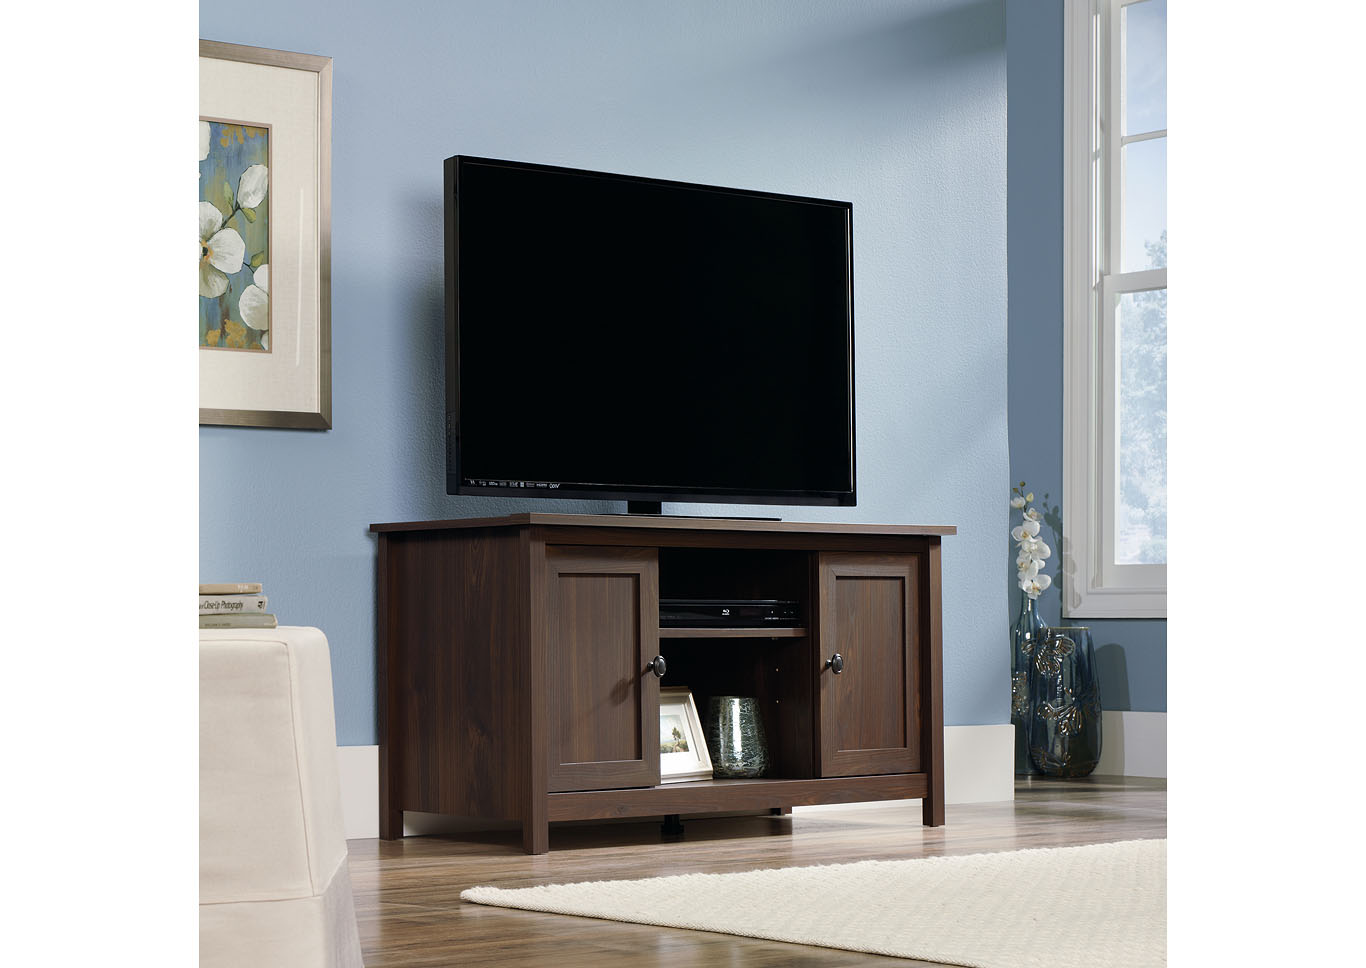 County Line Tv Stand Rum Walnut,Sauder